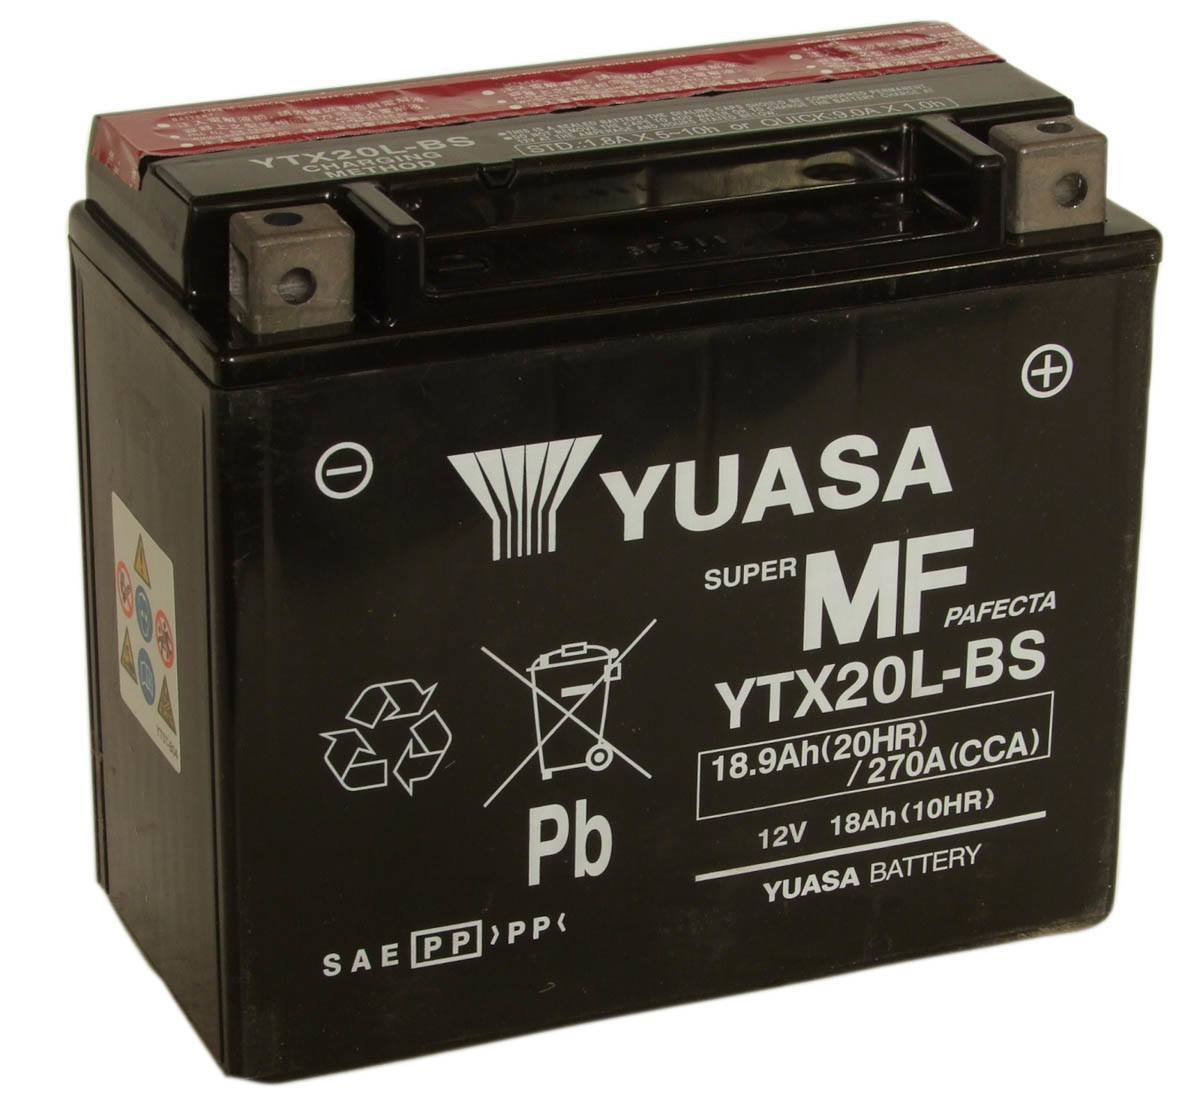 Get it delivered to your door - Yuasa YTX20L-BS Battery (USA) - 2500 (EGP)